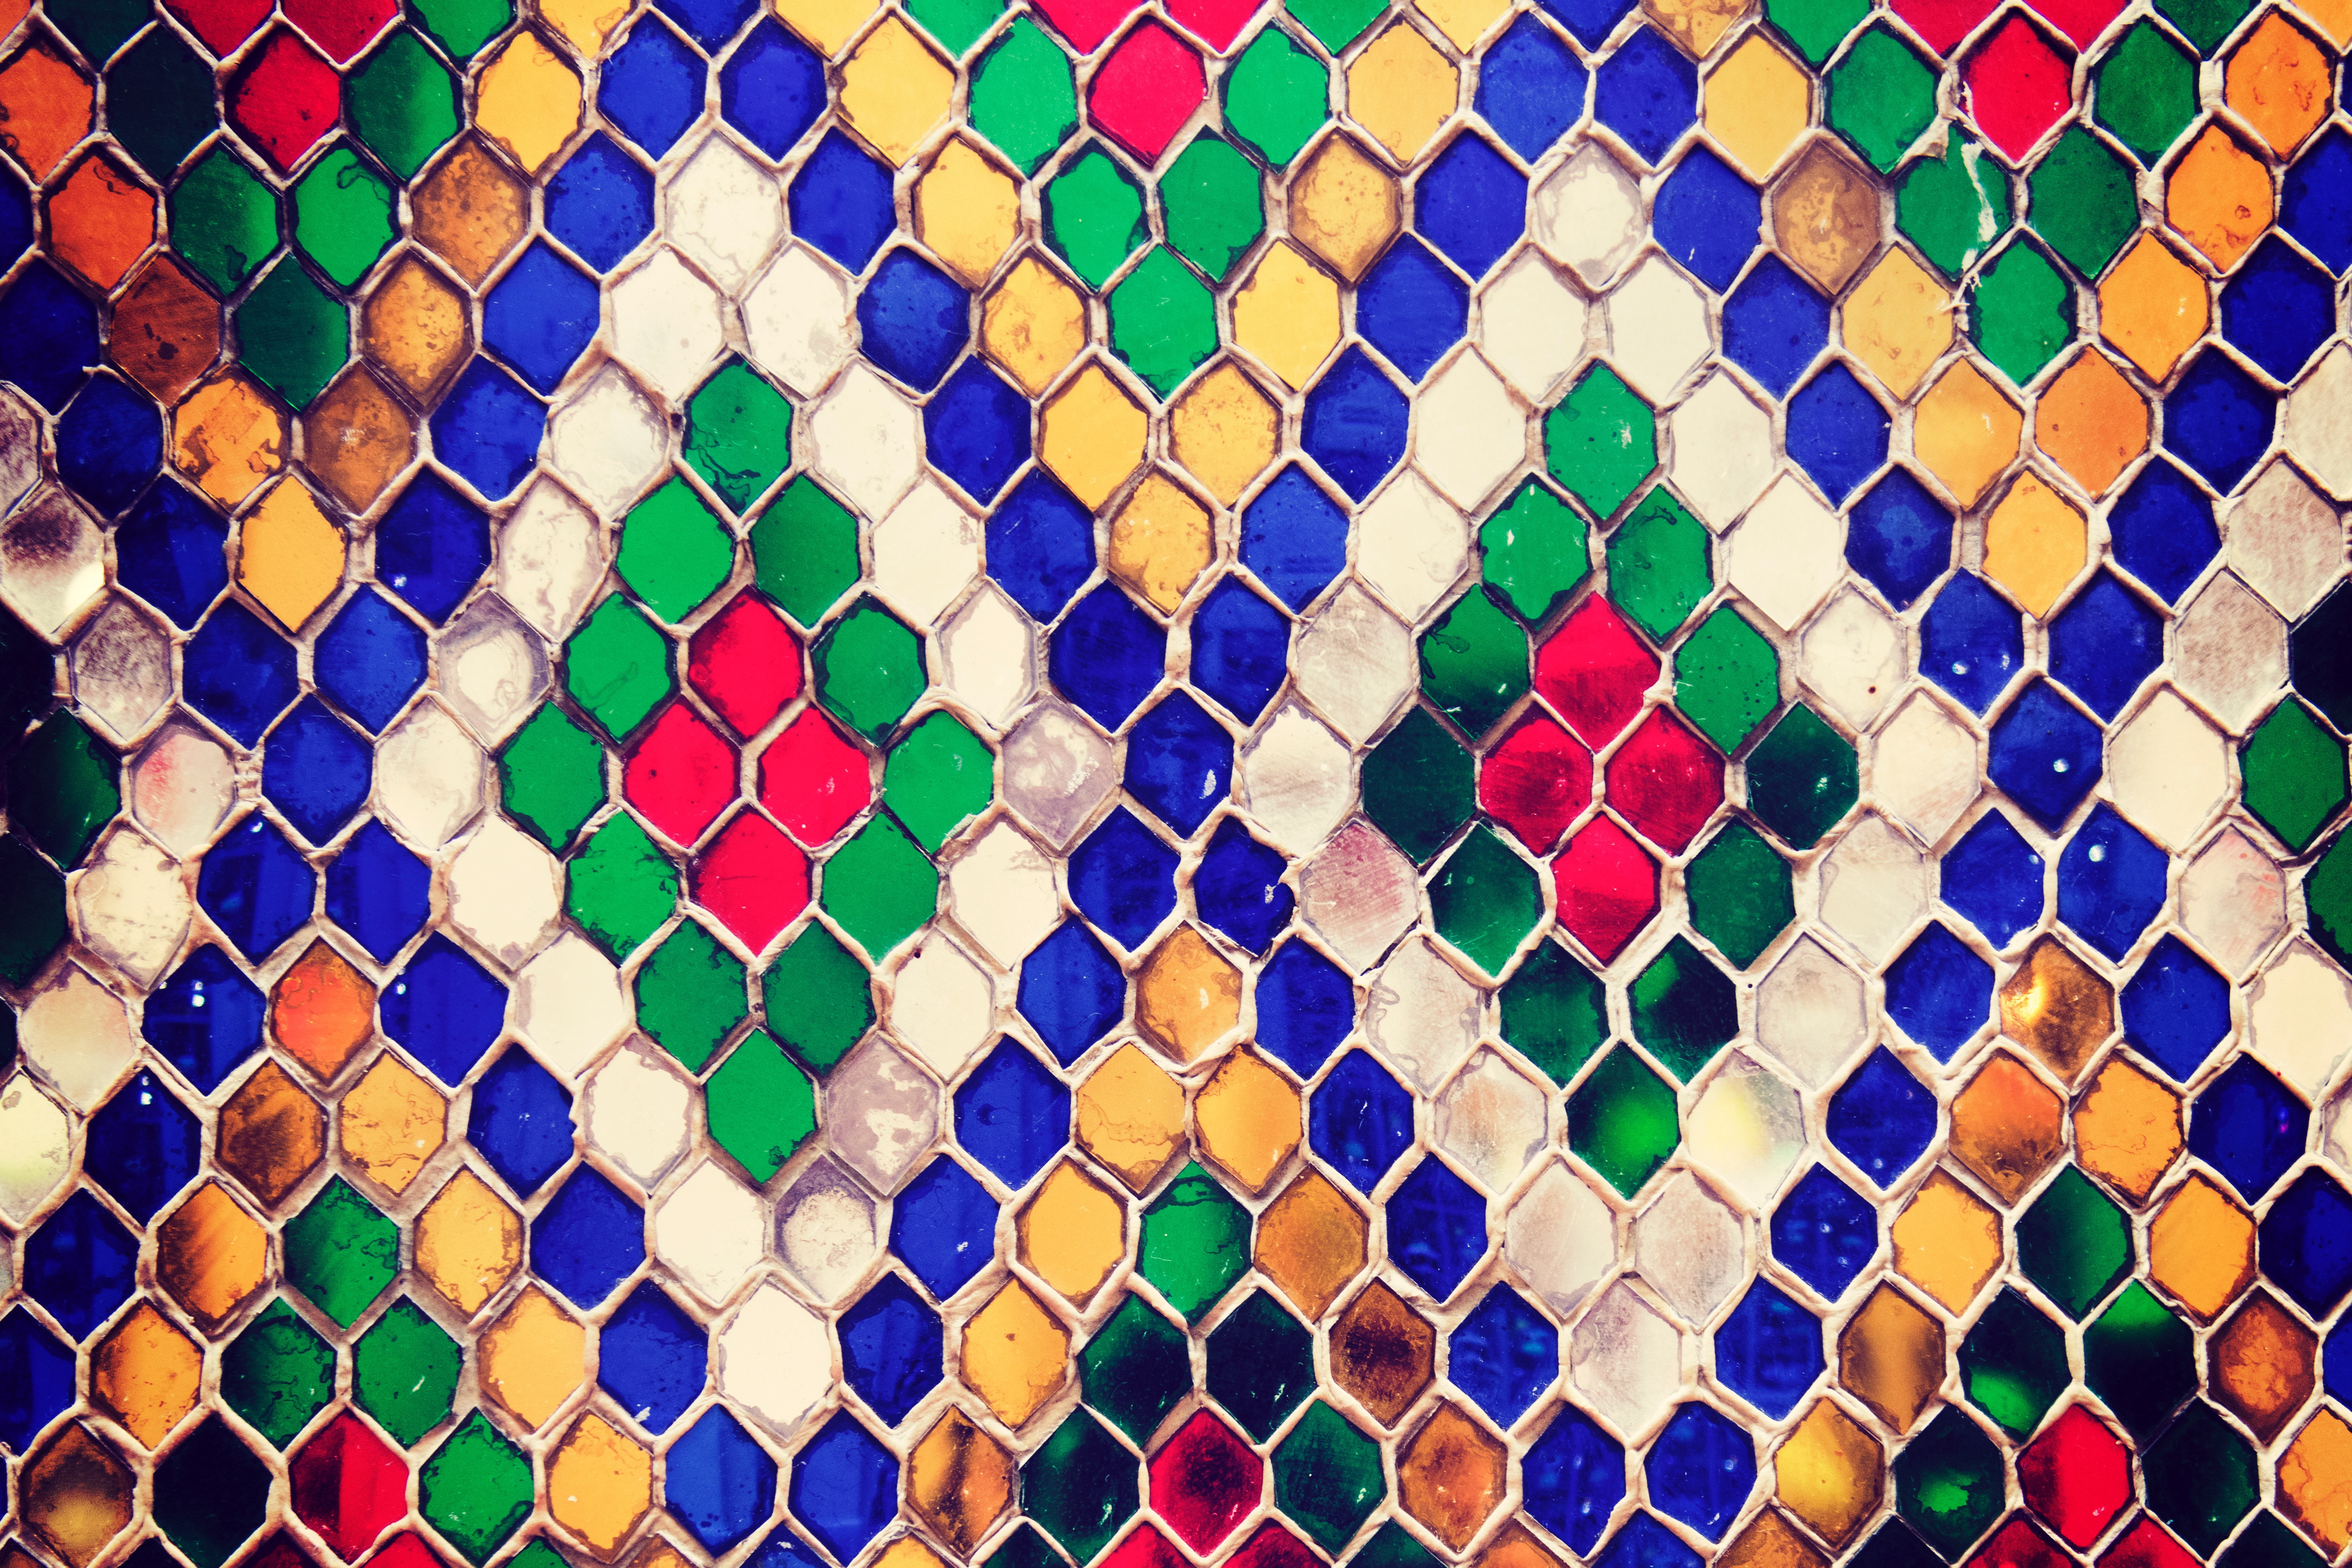 Multicolored Mosaic Photo, Abstract, Graphic, Texture, Style, HQ Photo